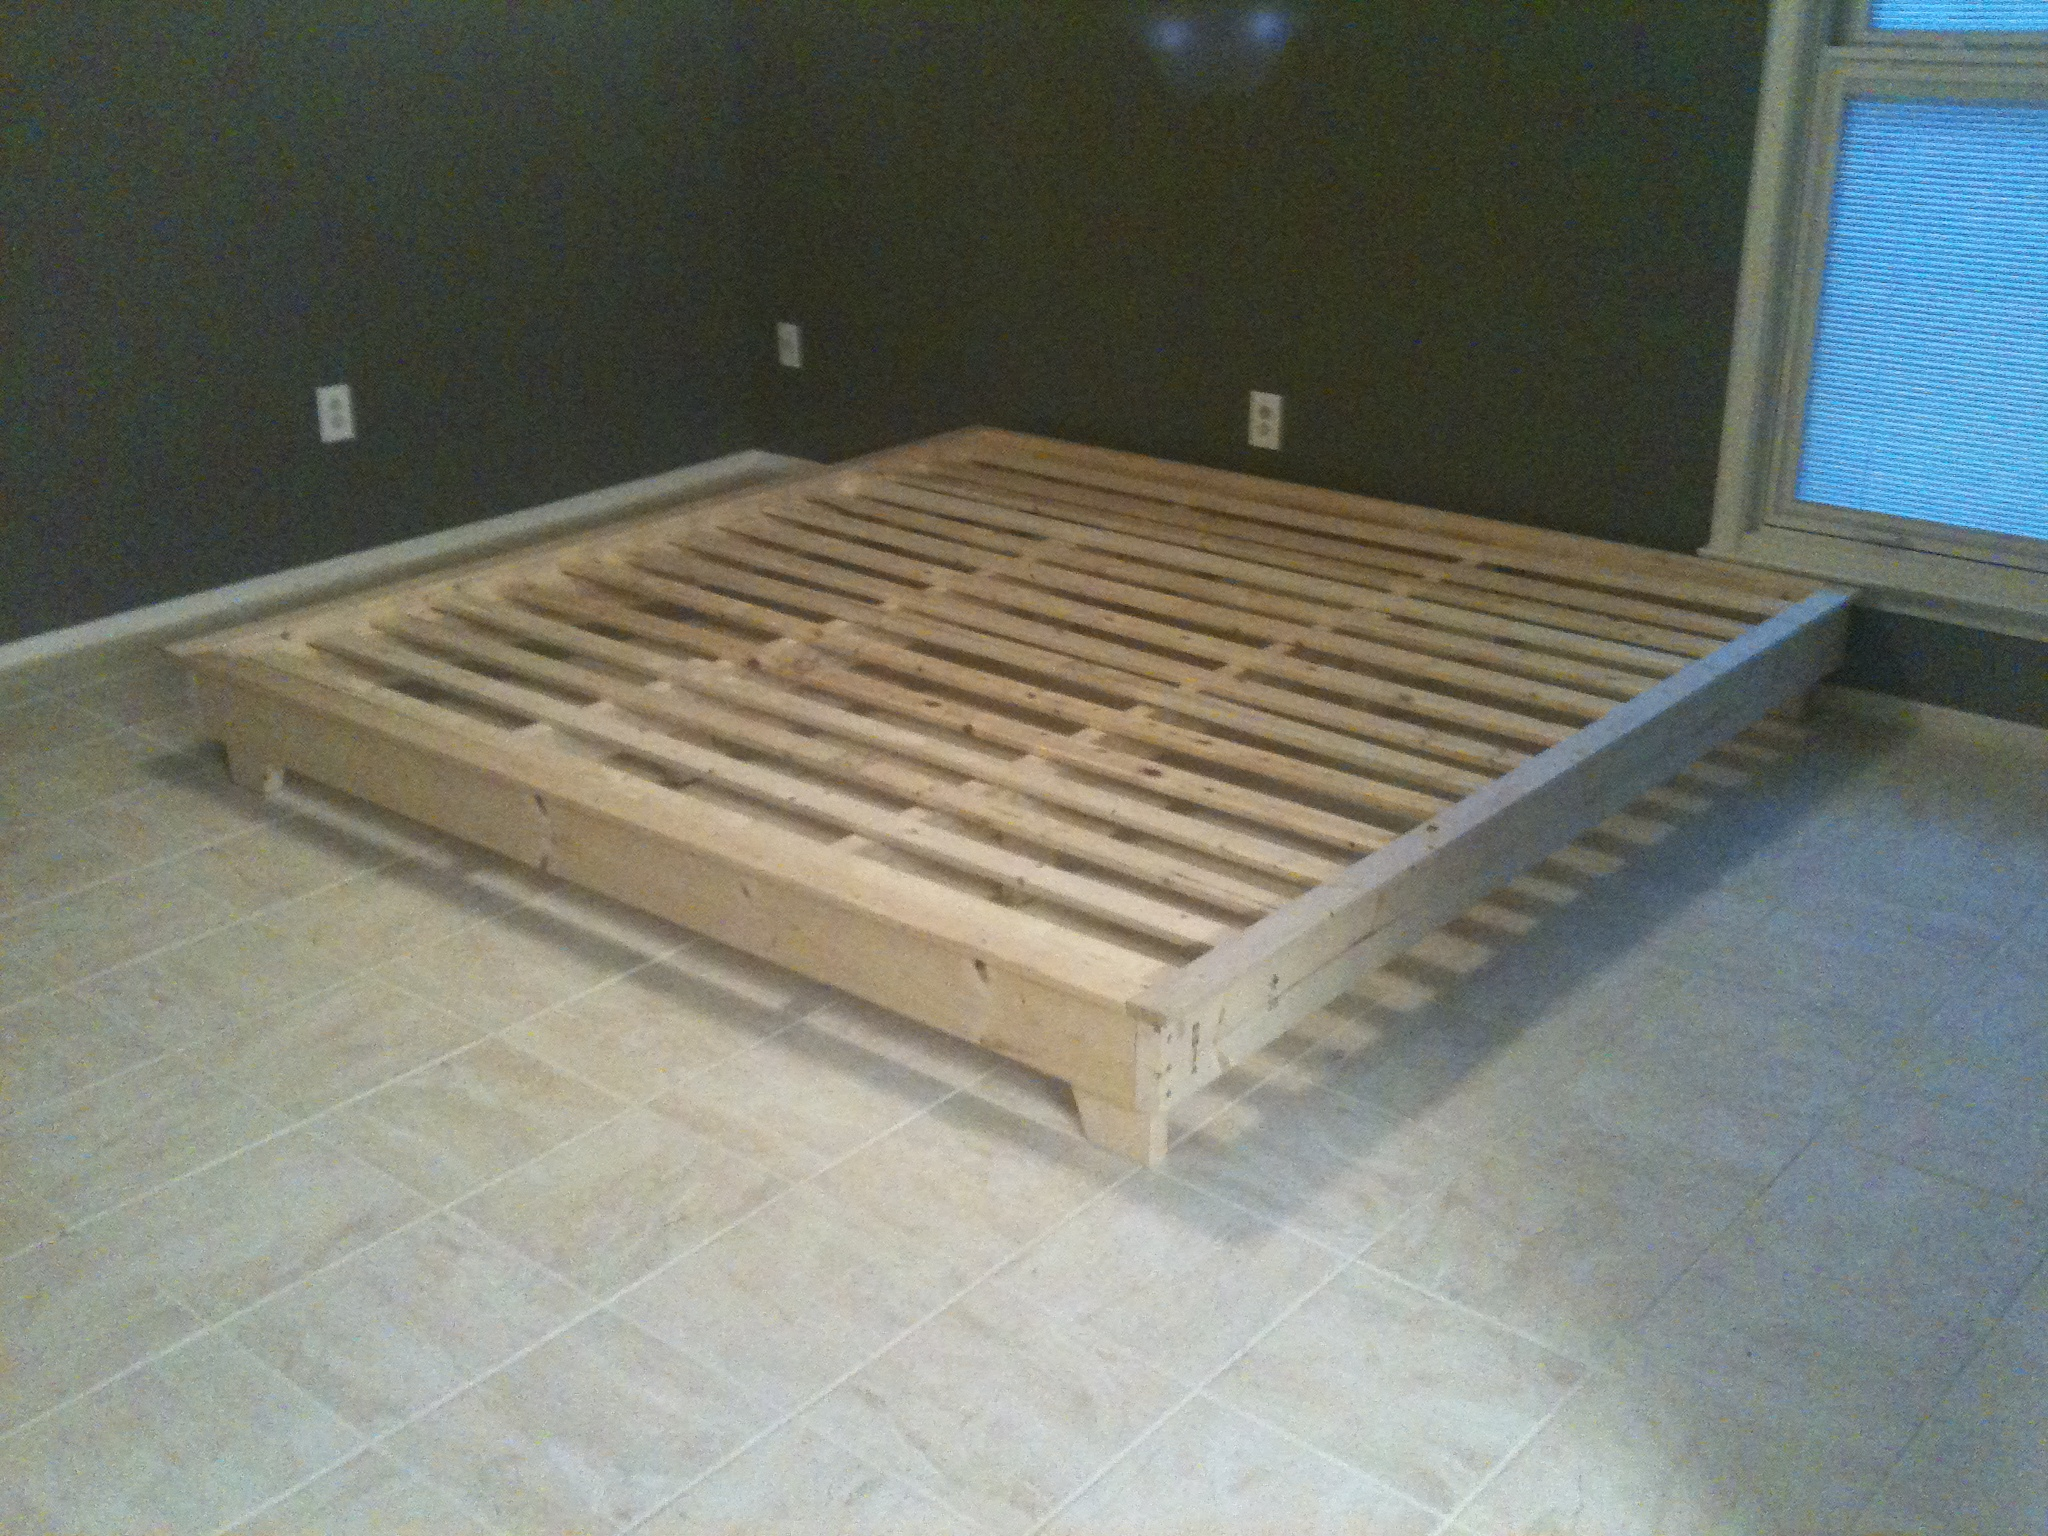 diy platform bed plans download how build platform bed frame 12 steps ...